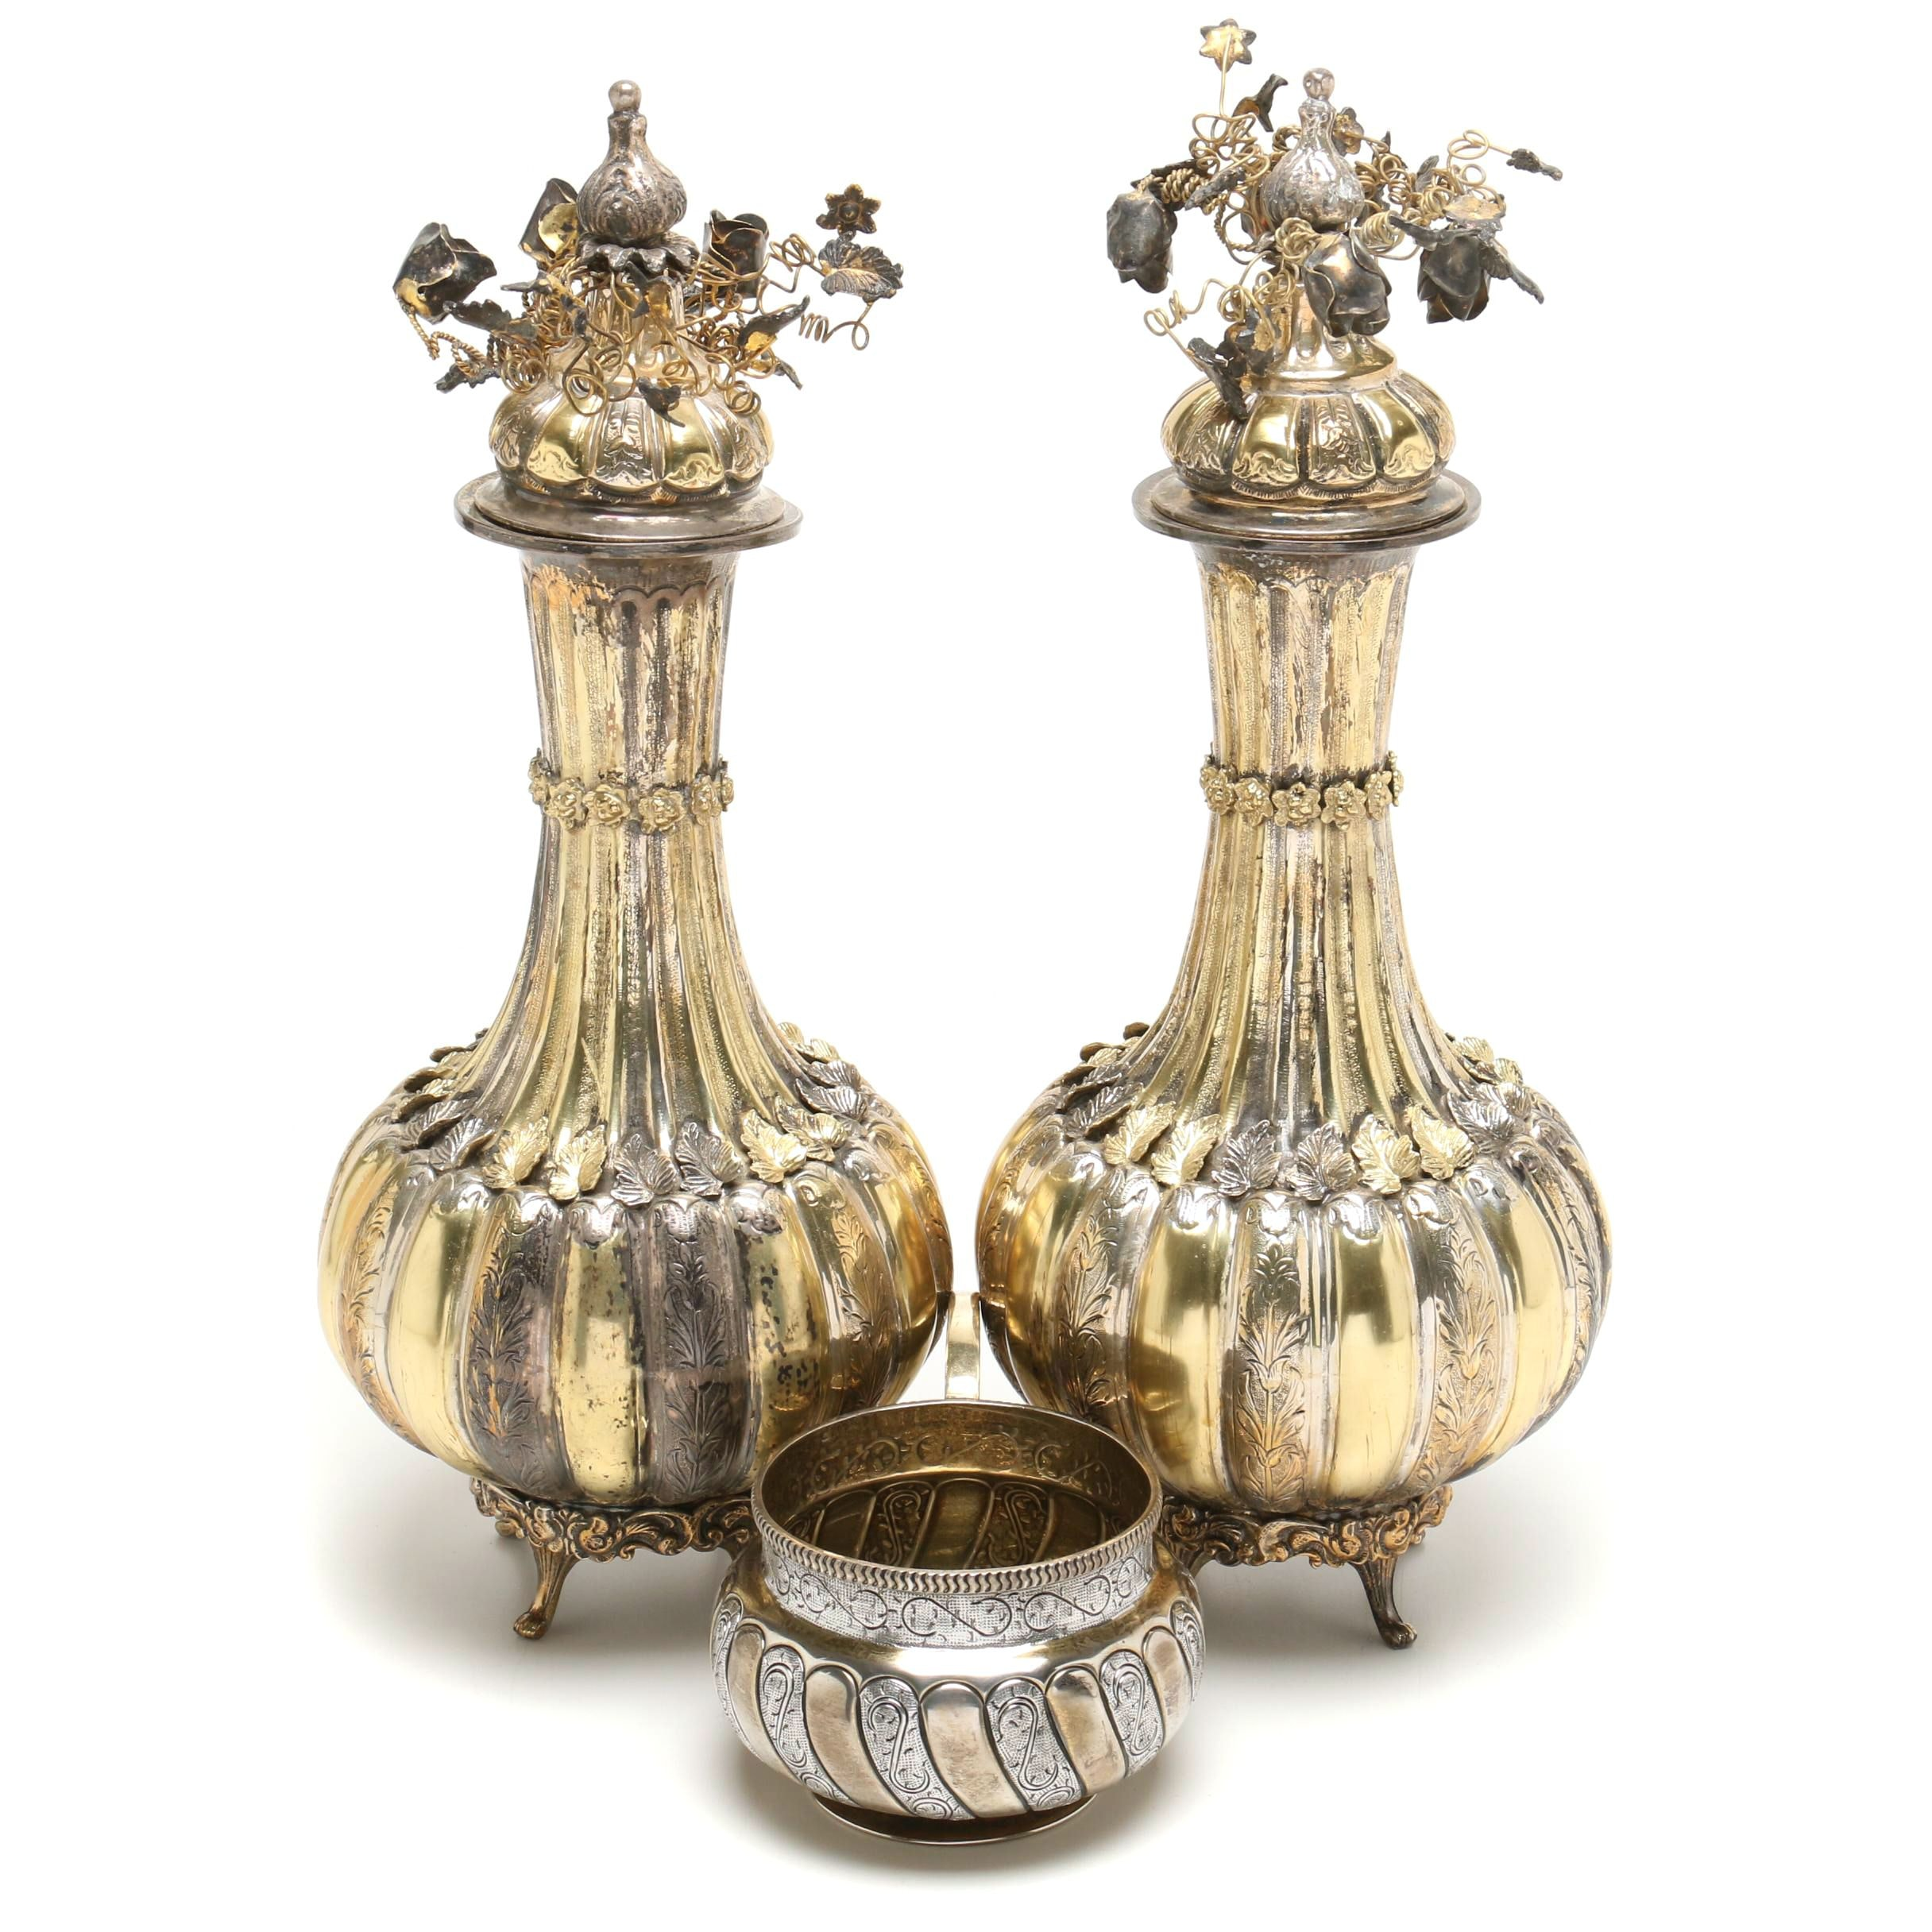 Pair of Antique 900 Silver Urns and Tane Sterling Silver Kovsh Bowl